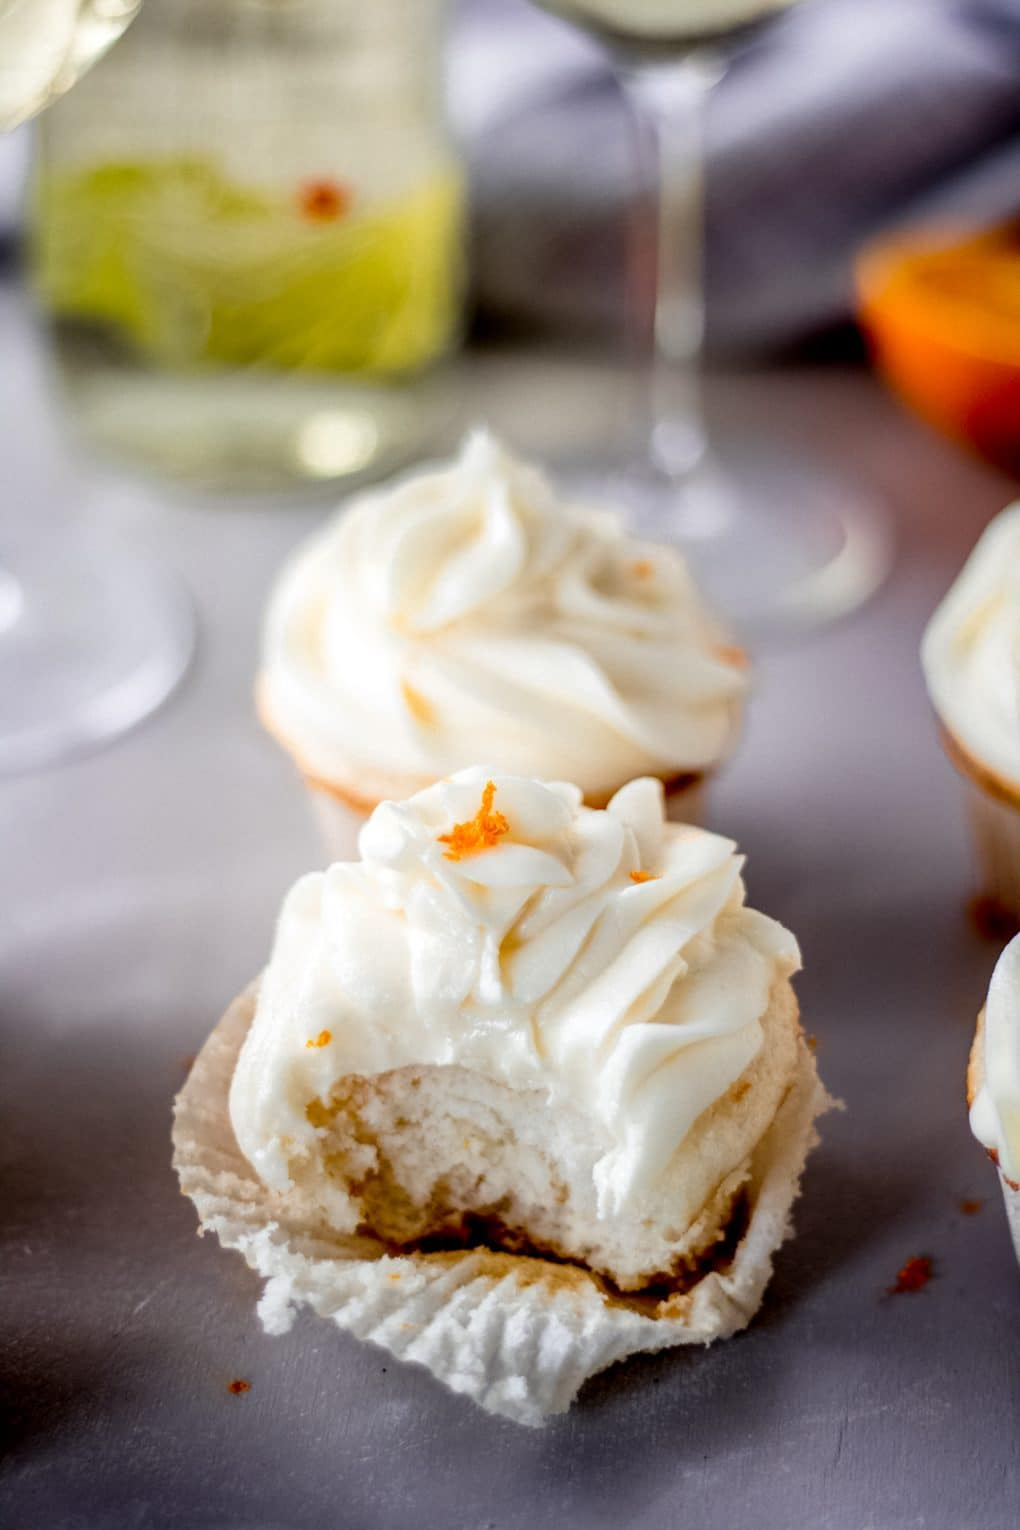 an orange moscato cupcake with one bite taken out of it sitting on the table. There's another orange moscato cupcake in the background and a bottle of Moscato